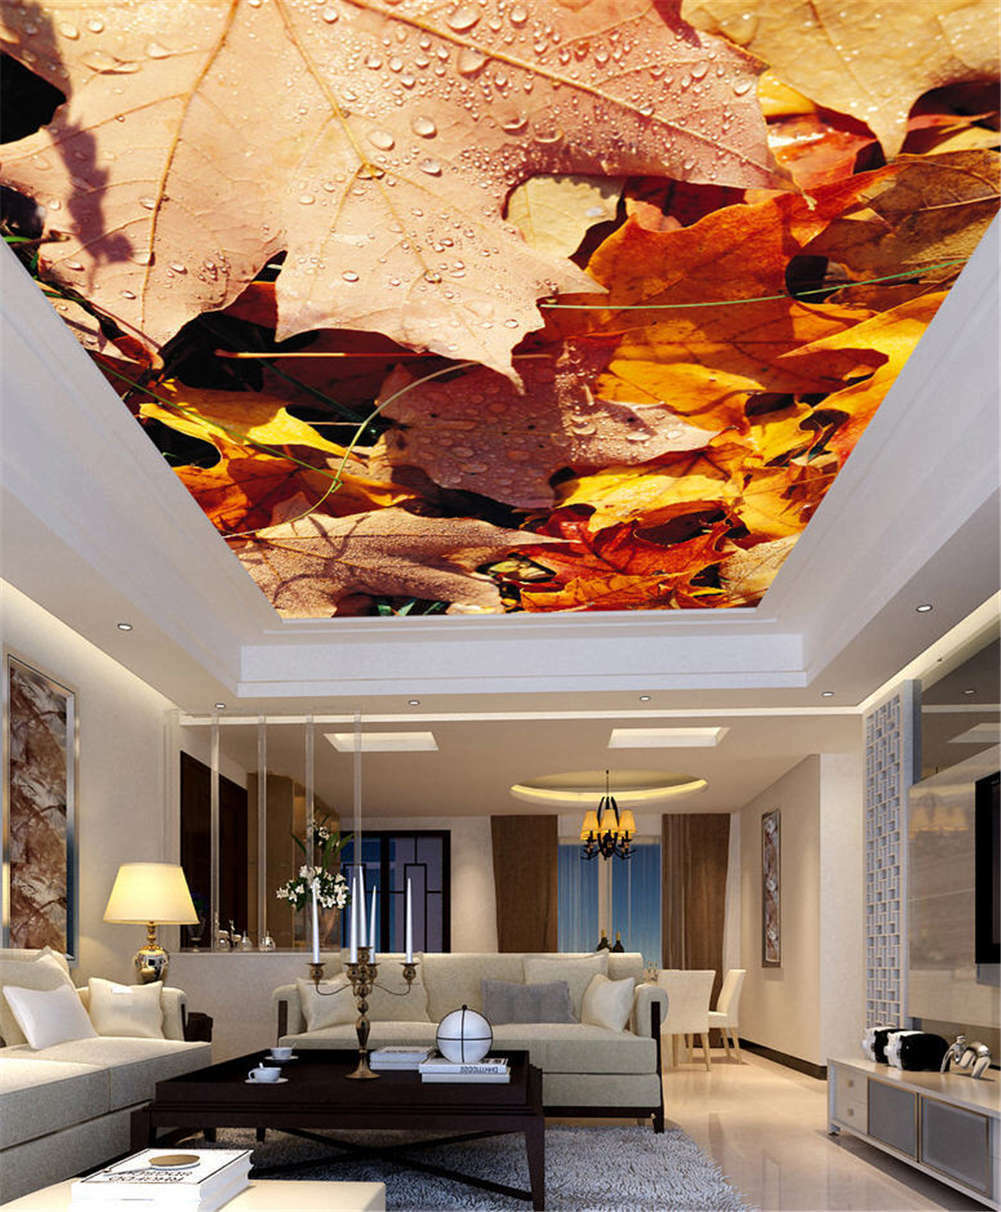 Rich Visible Picture 3D Ceiling Mural Full Wall Photo Wallpaper Print Home Decor